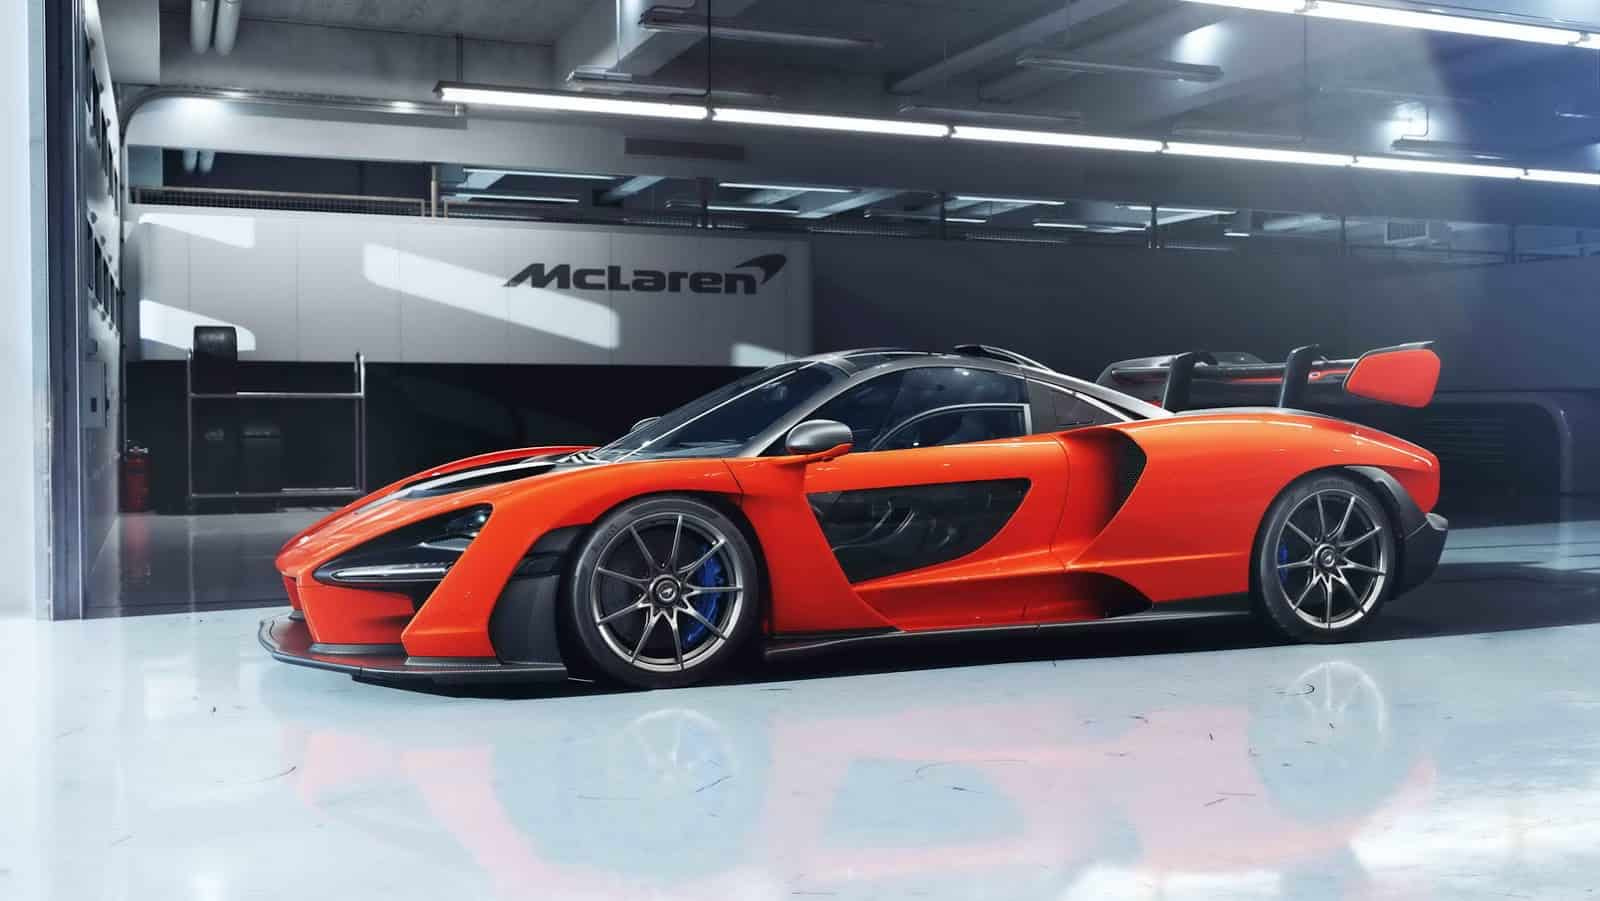 The McLaren Senna is a Devastating 789 HP Street-legal Track Beast